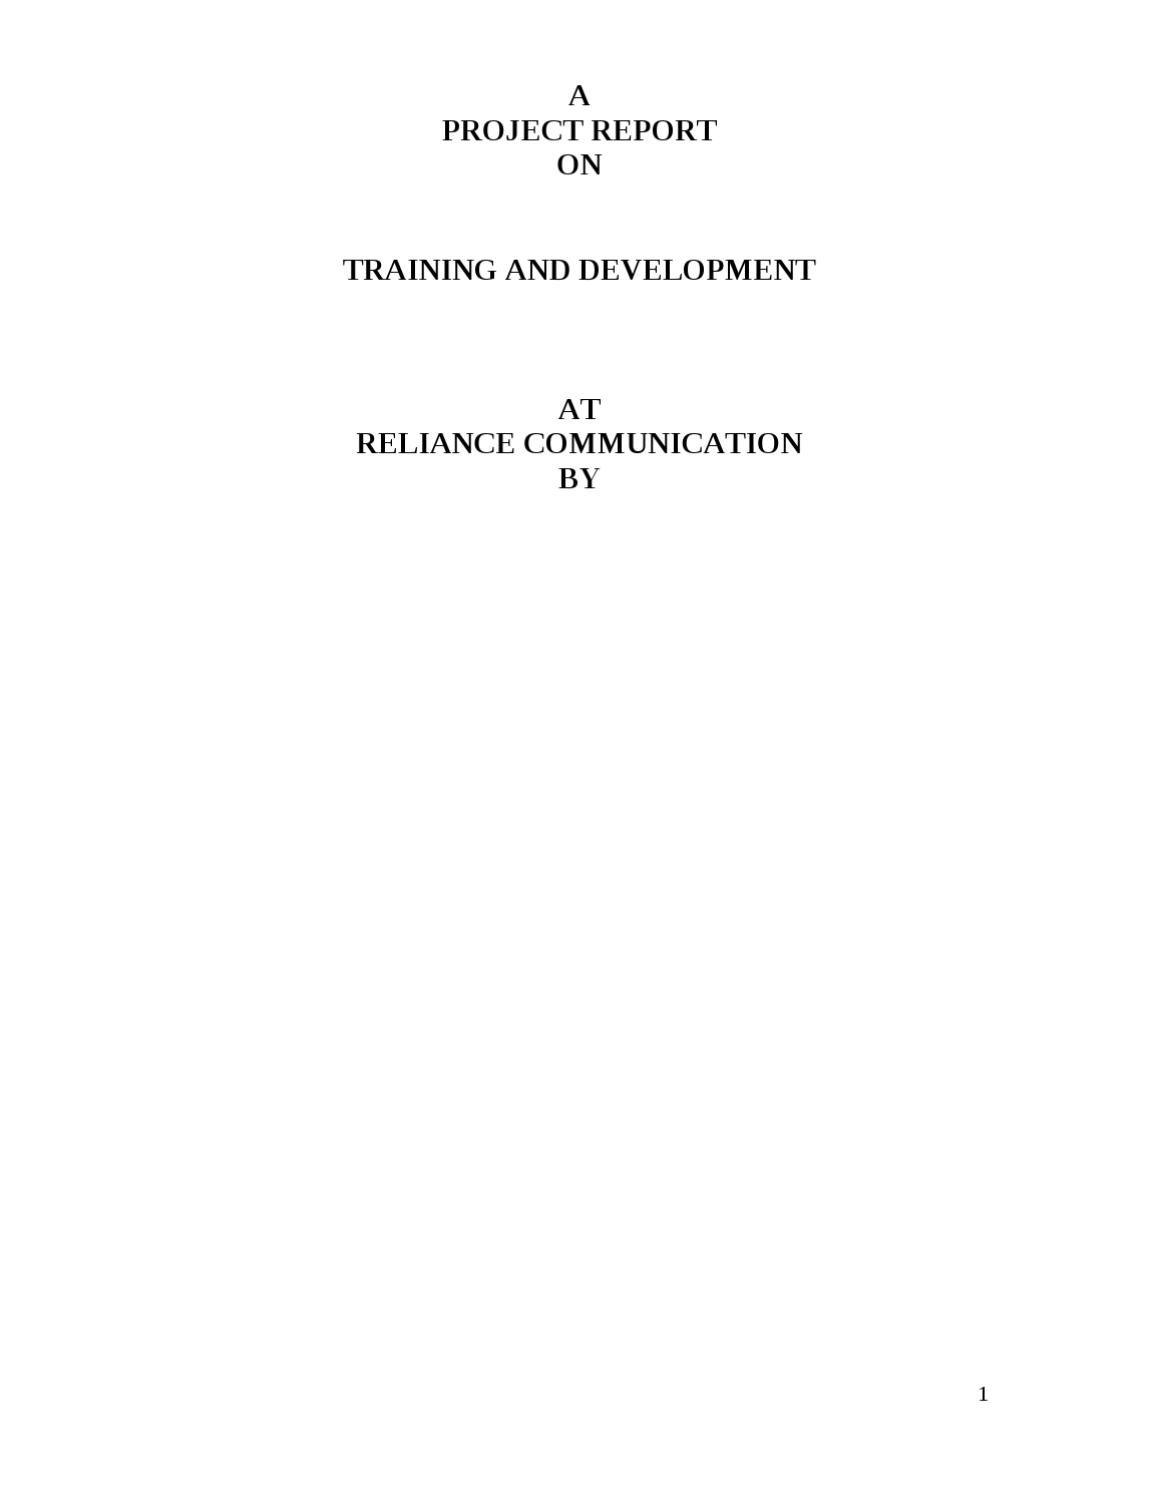 project report on reliance communication Project topics human resource management mba organizational culture with reference to reliance communications a project report on employee.